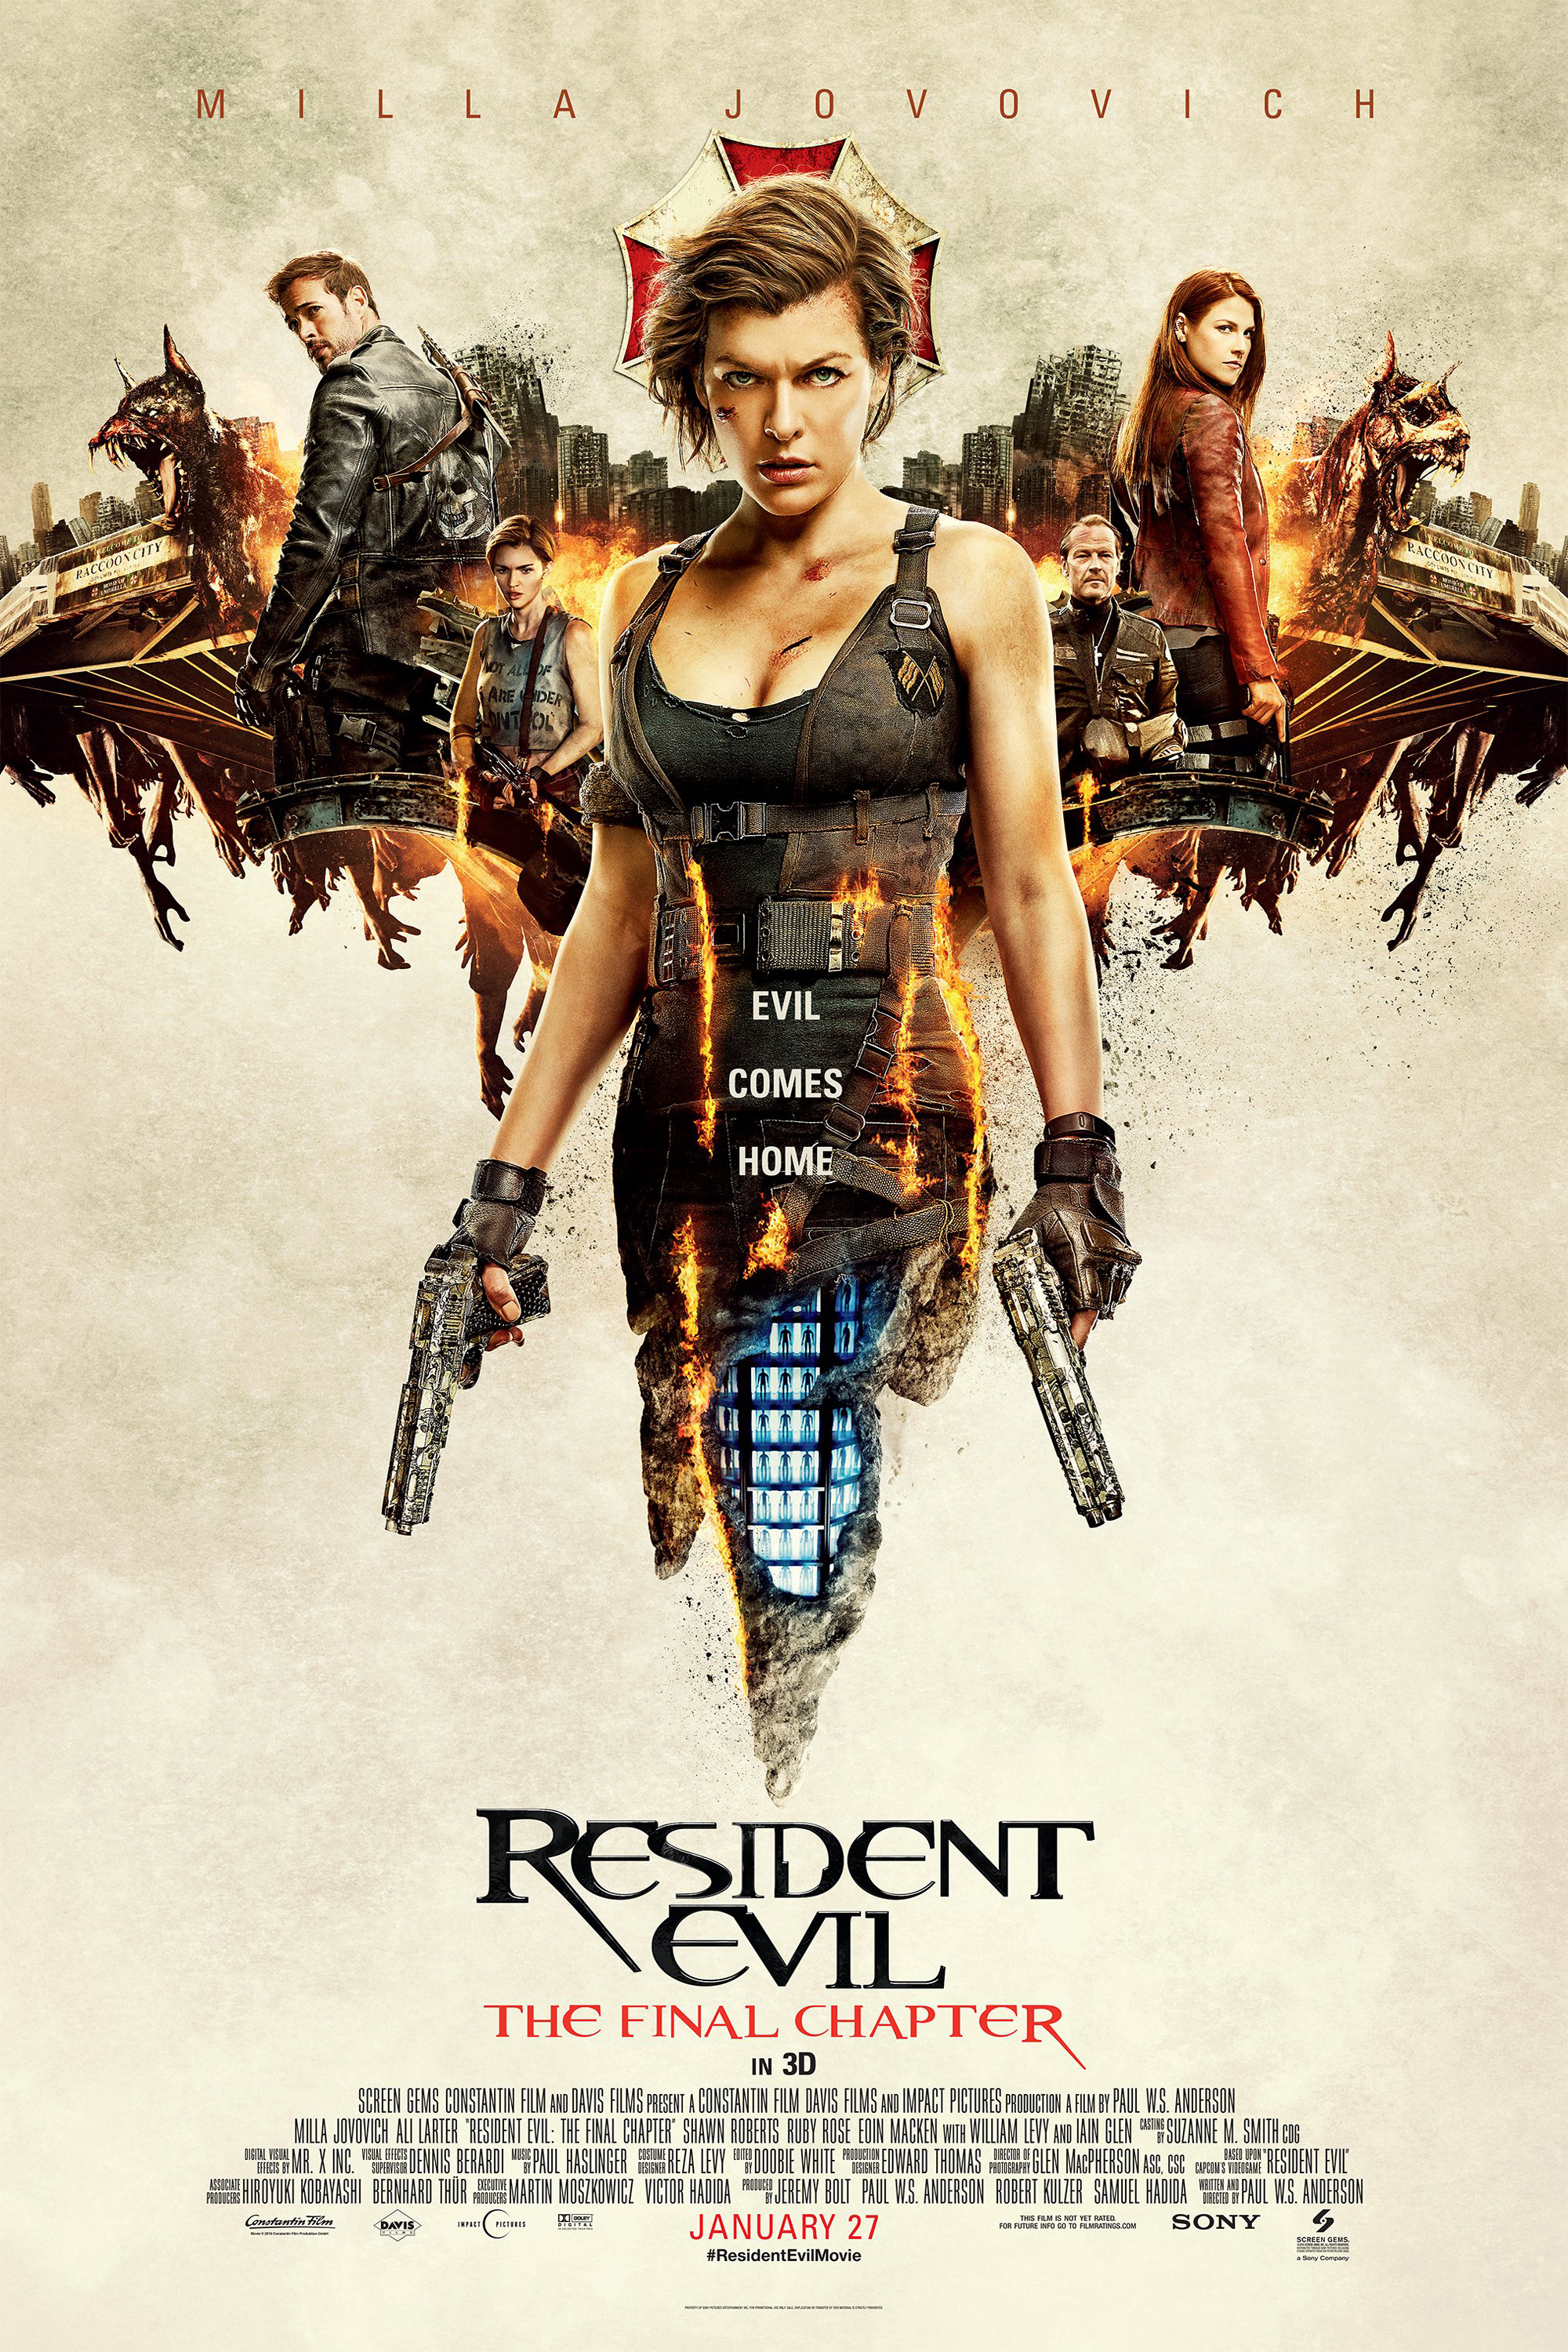 Poster for Resident Evil: The Final Chapter